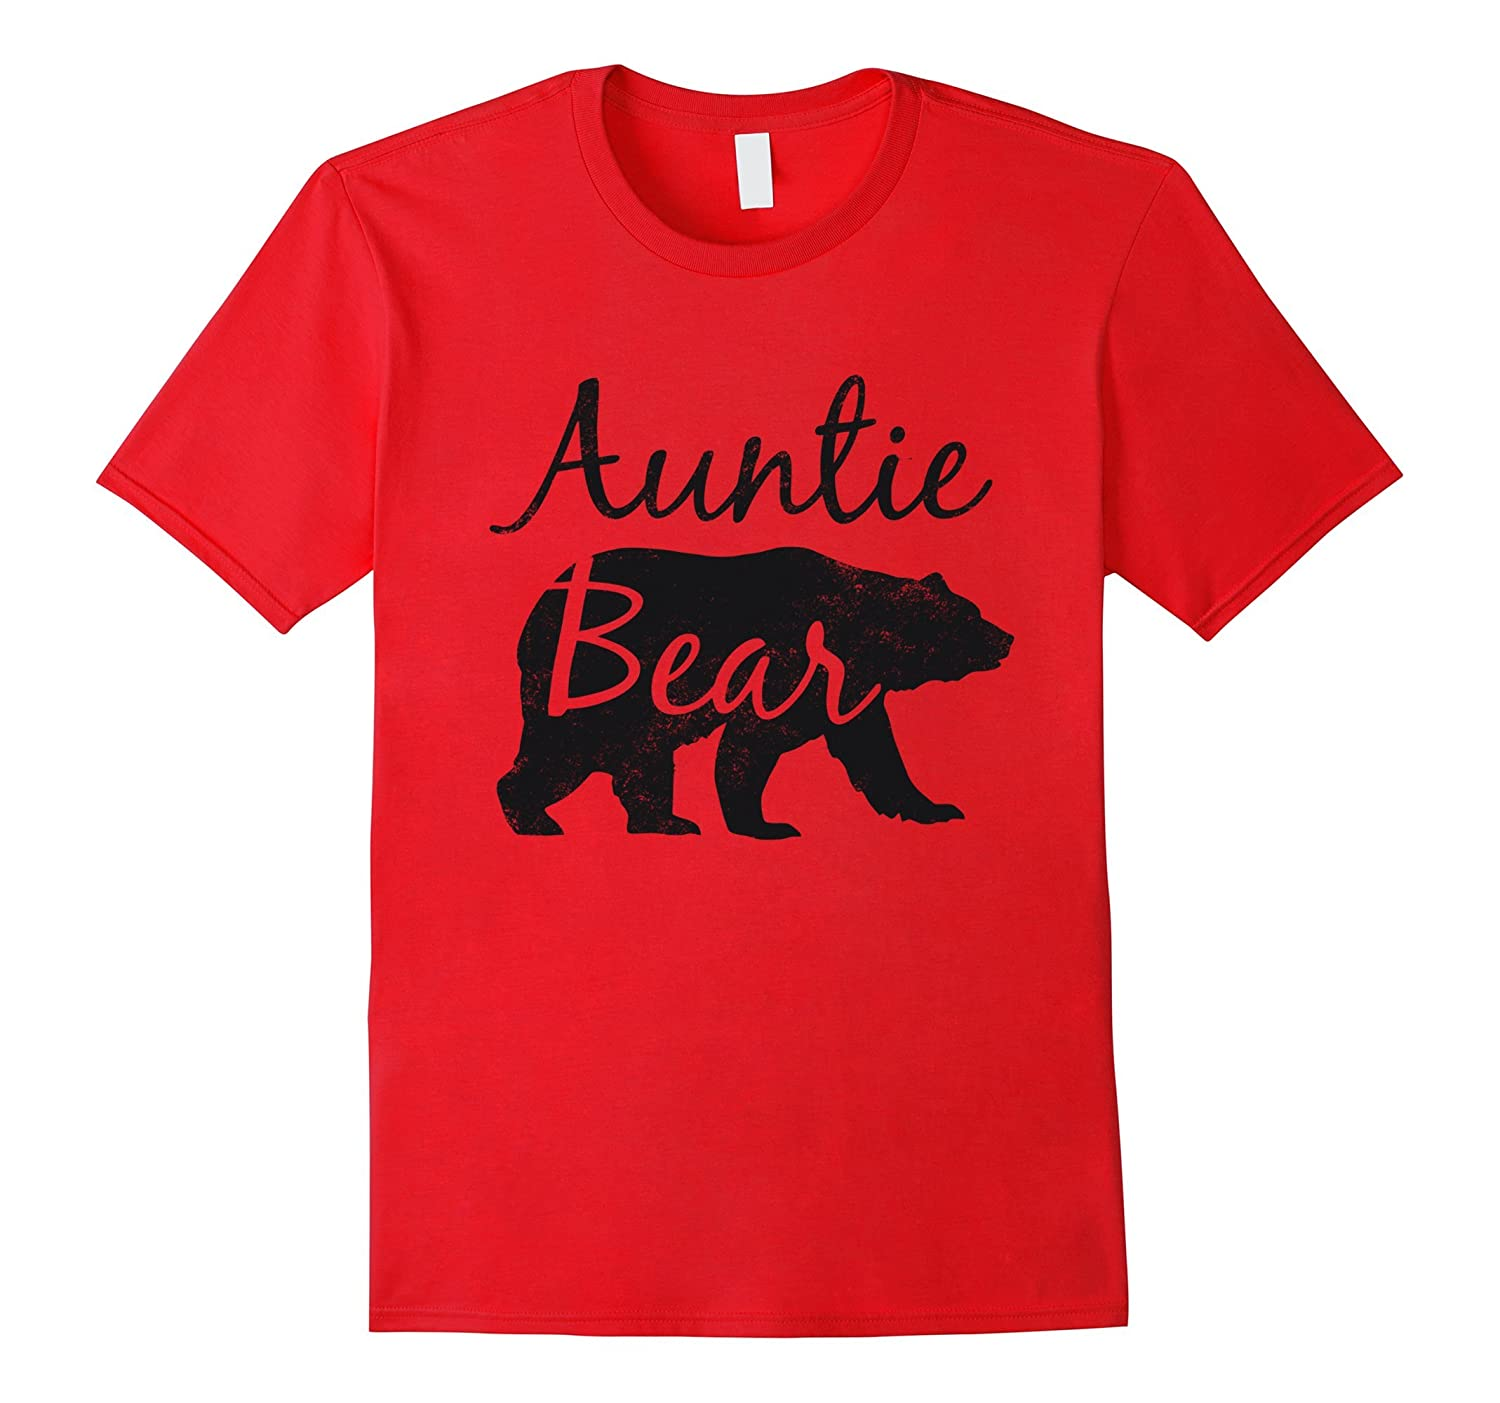 Auntie Bear Tee - Mothers Day  Aunt Gift  Wife-TH